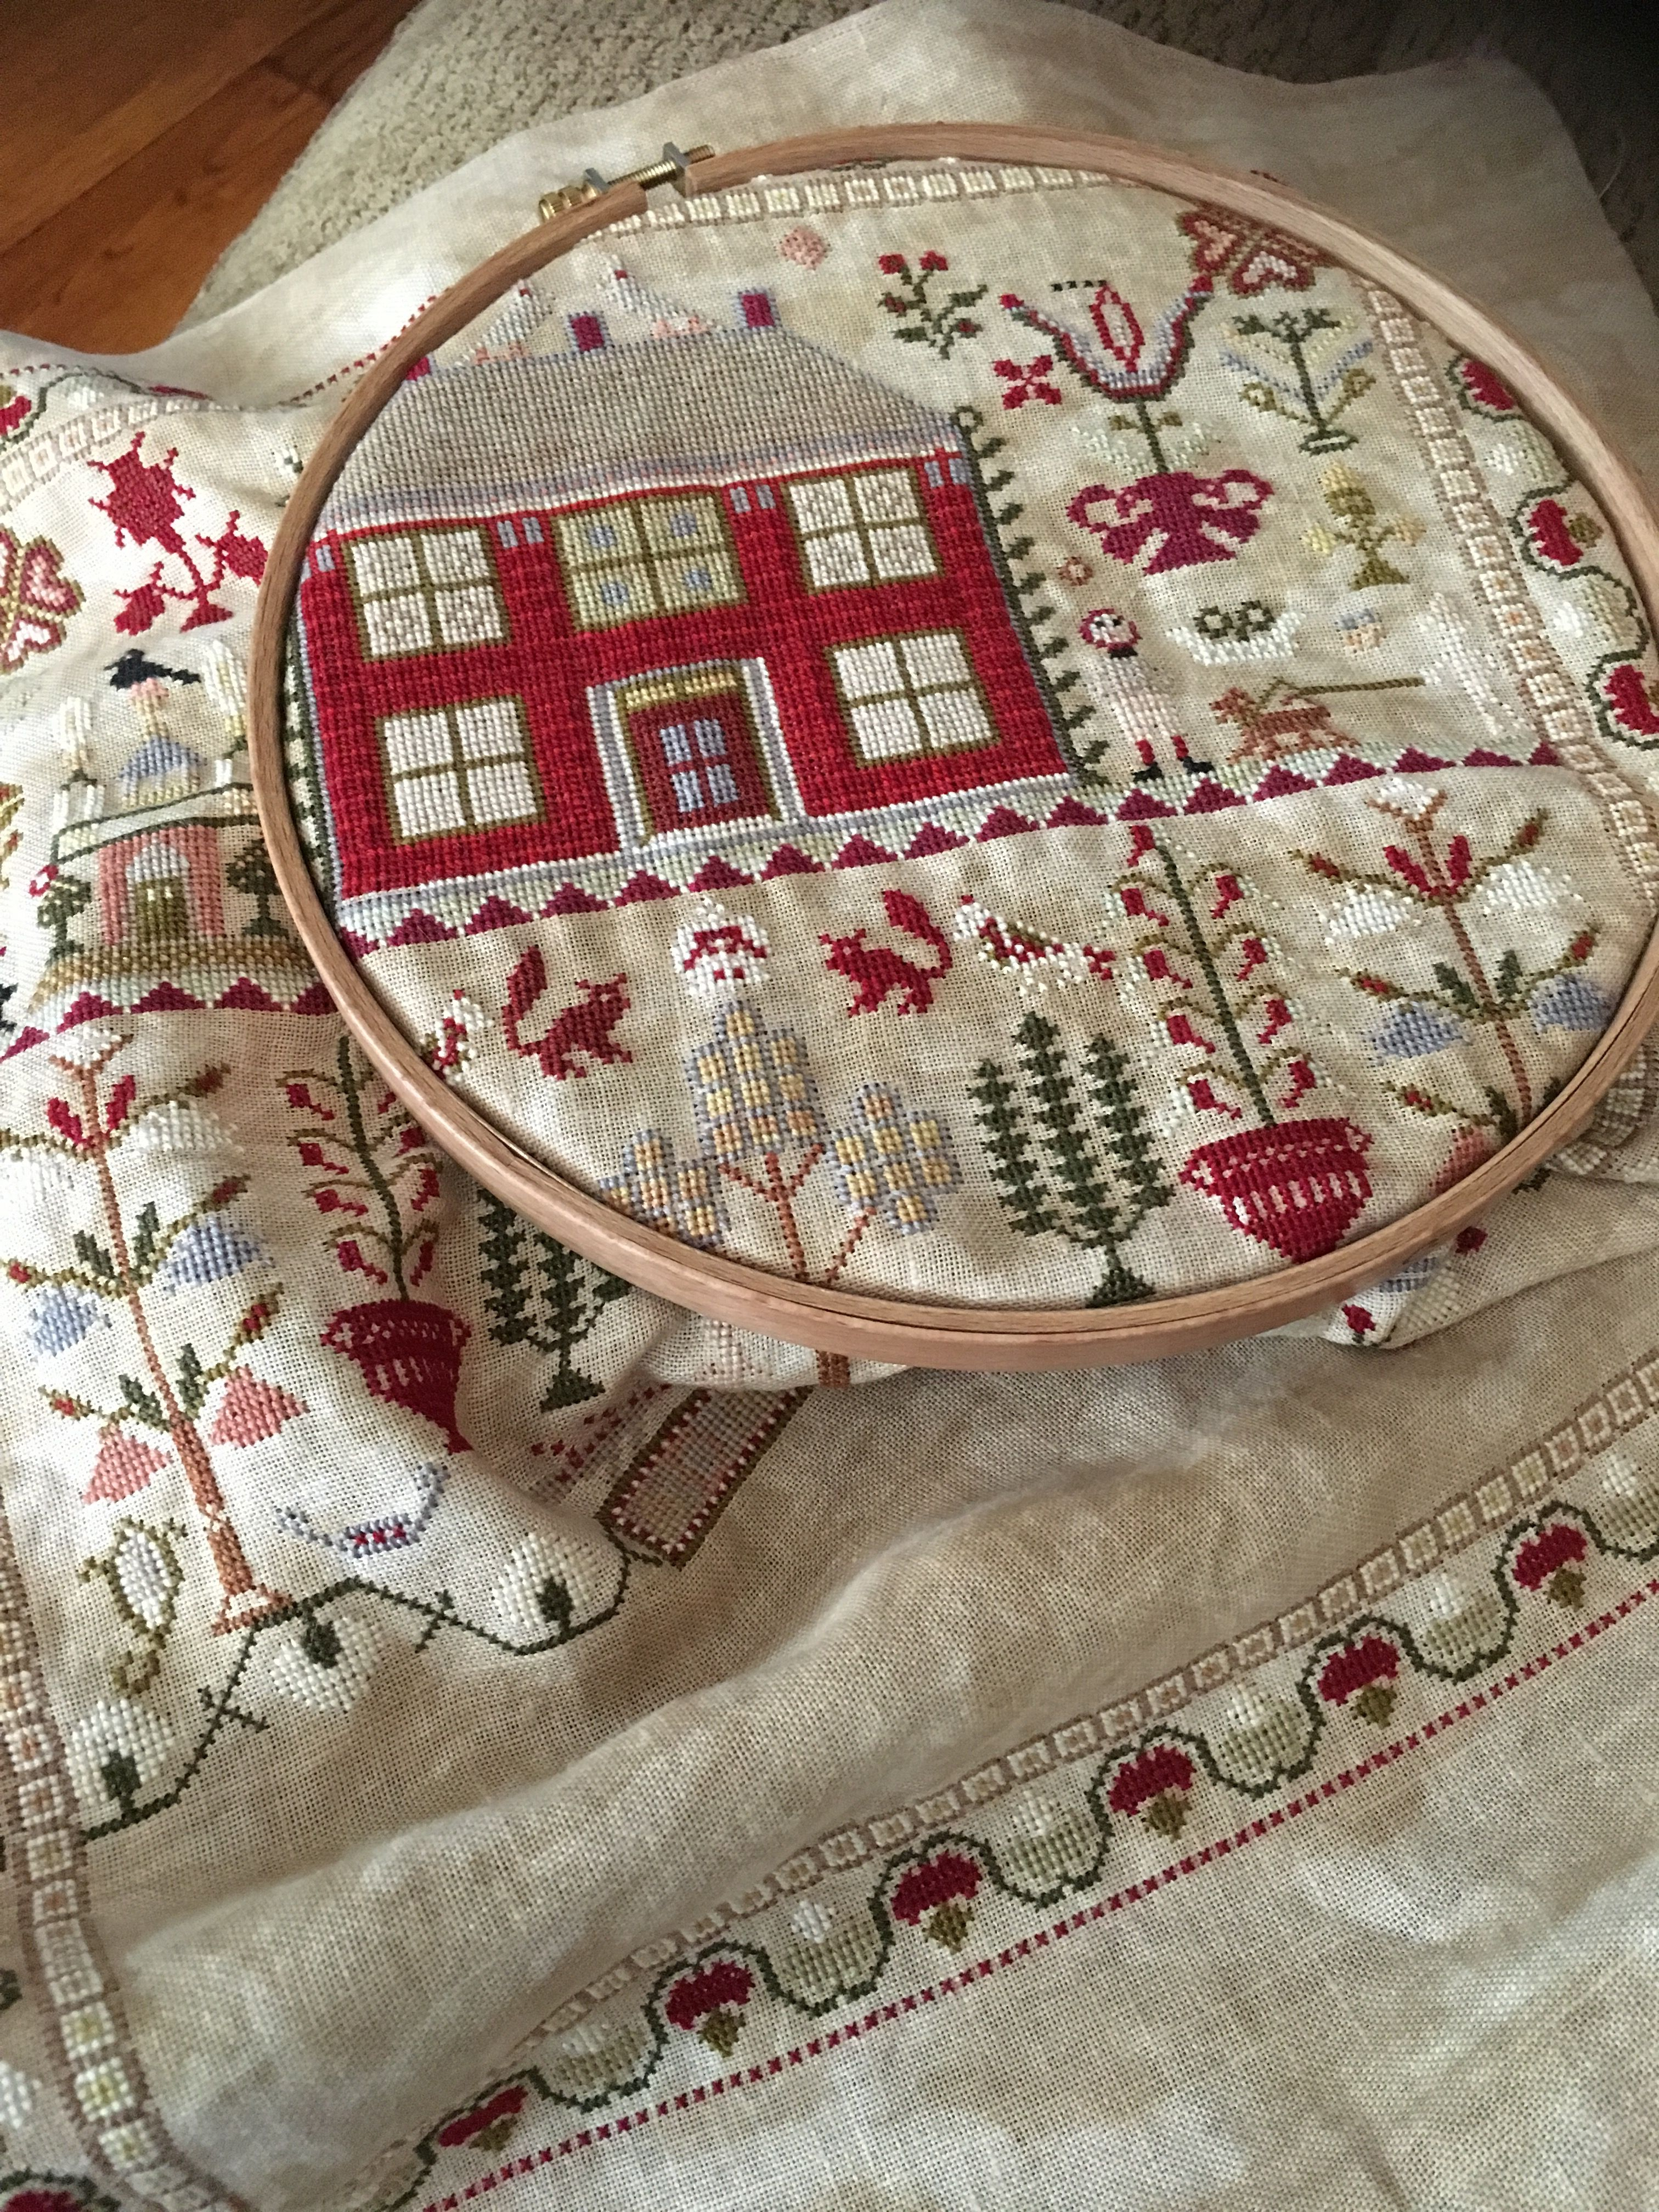 In My Hoop Esther Iddison Dlh Cross Stitch Samplers Cross Stitch Embroidery Cross Stitch